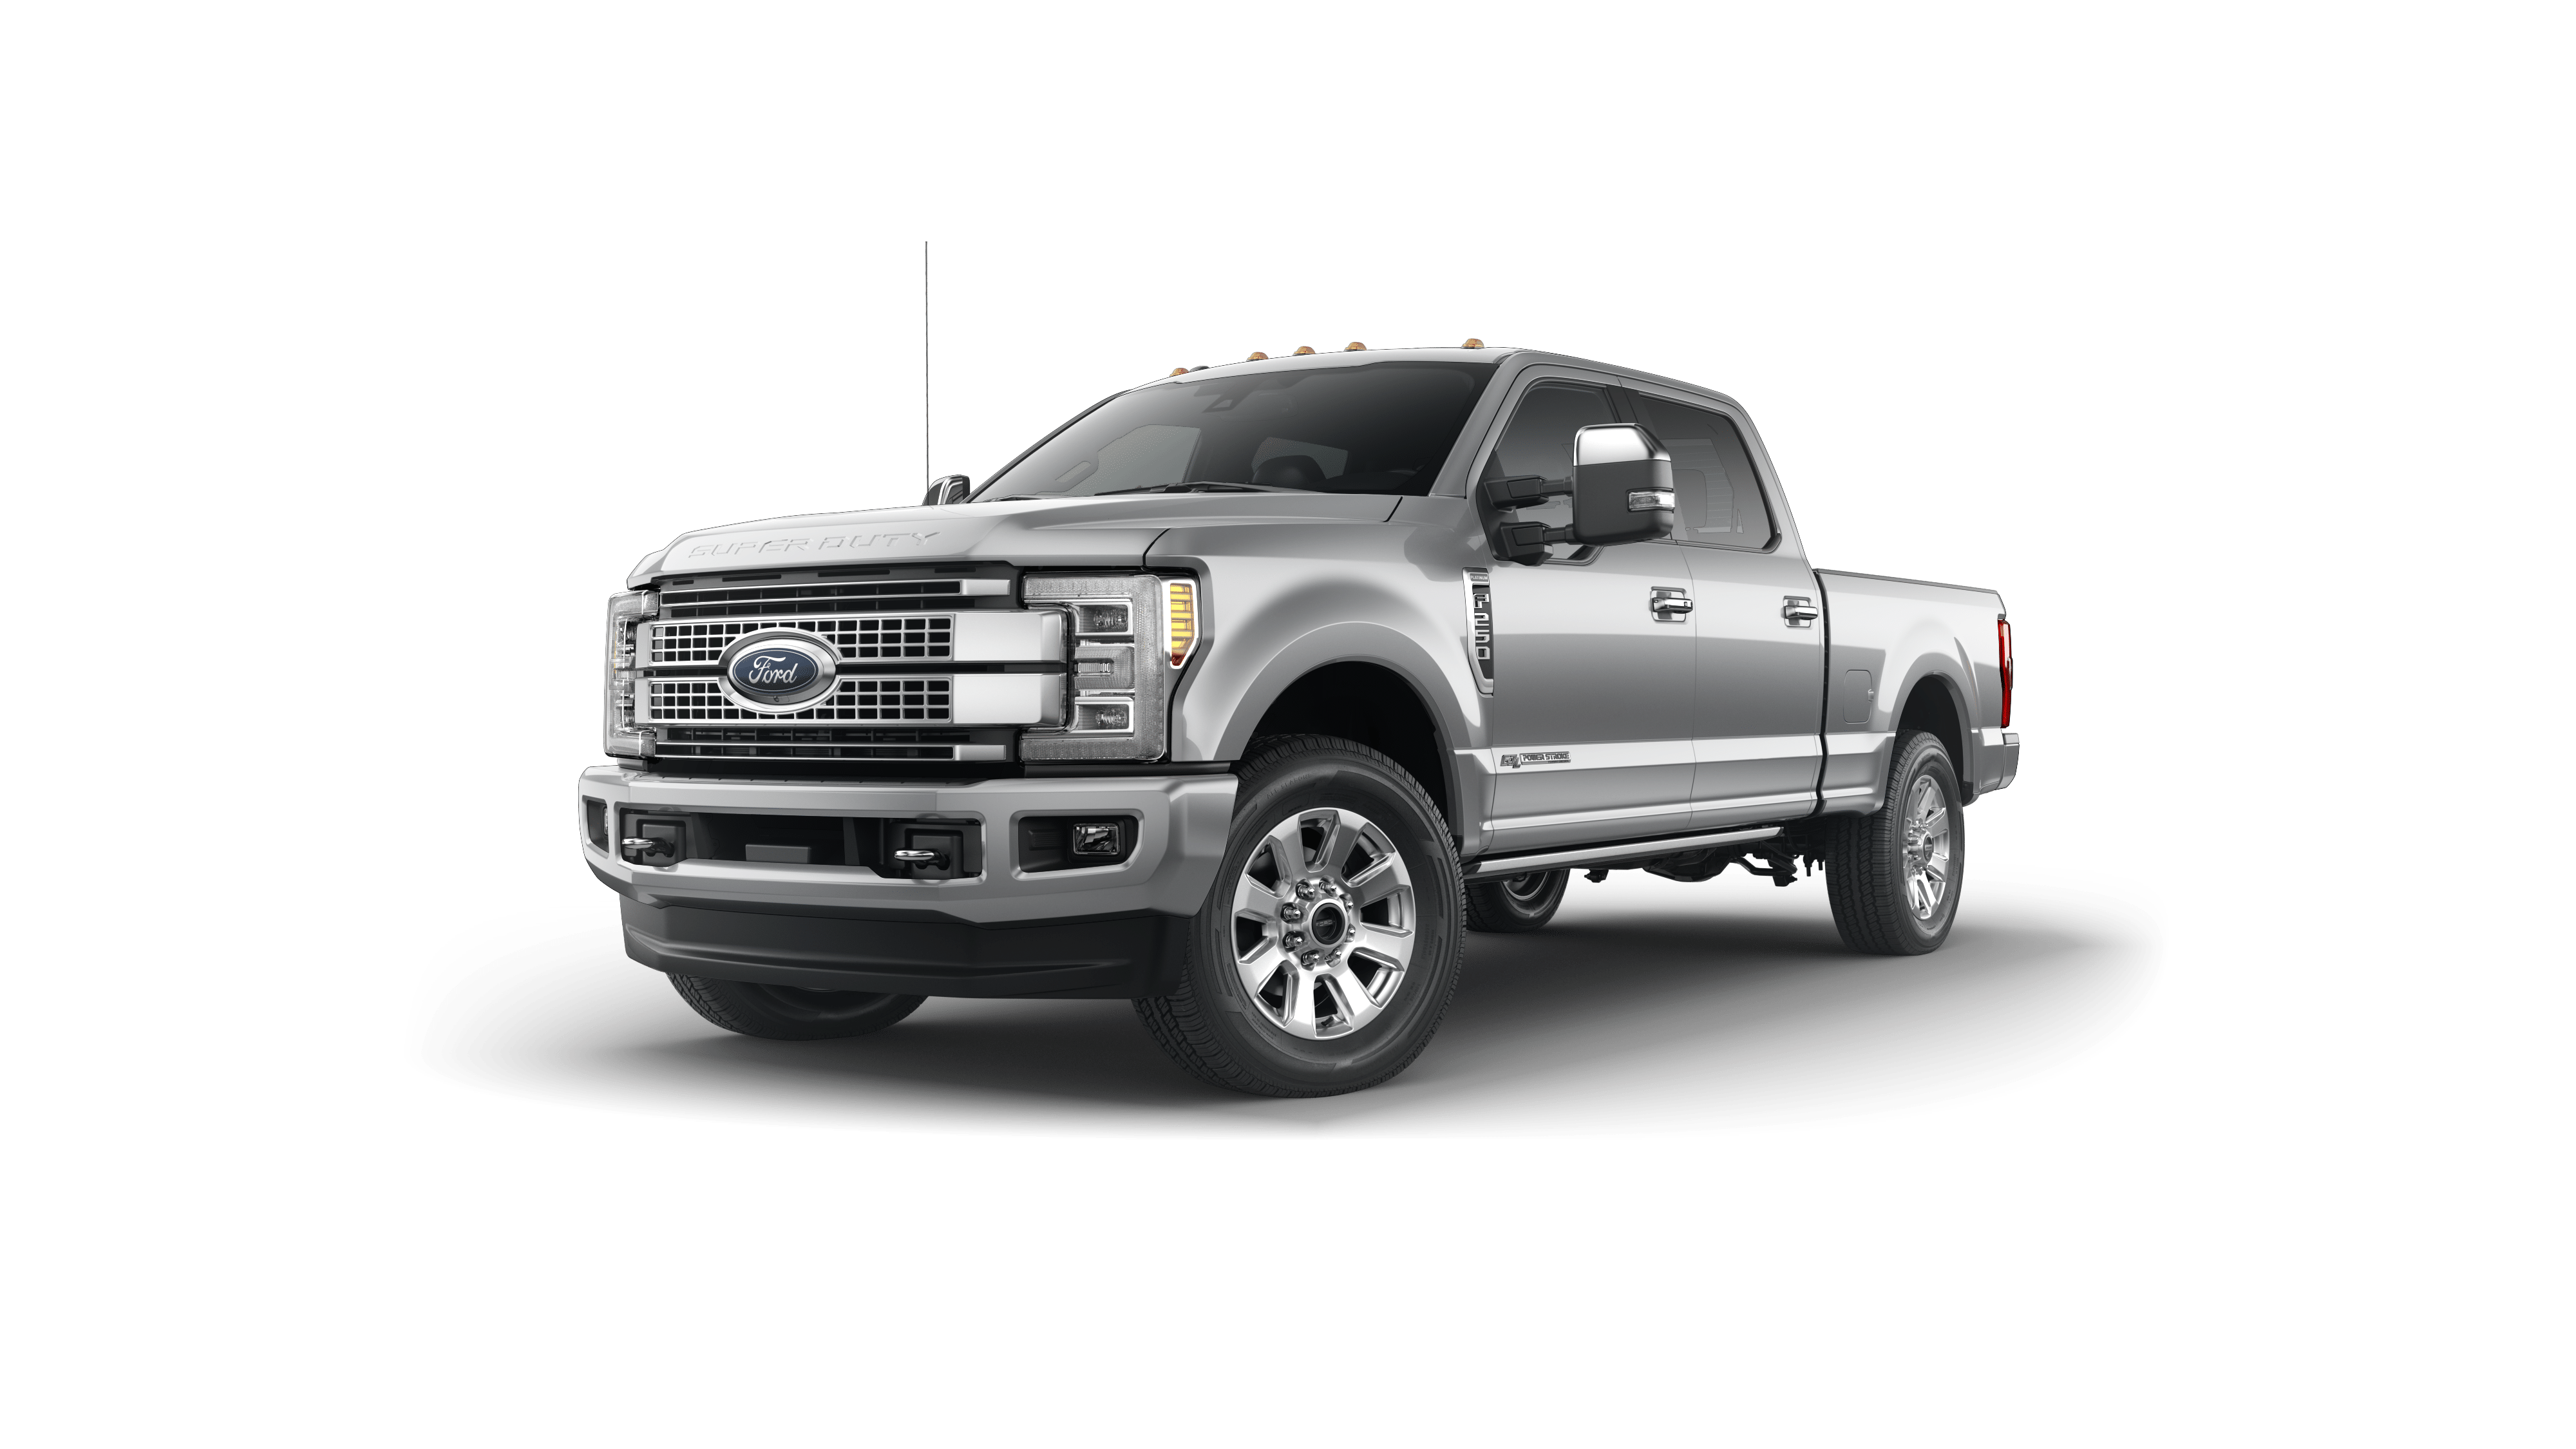 2018 Ford Super Duty F-250 SRW Vehicle Photo in Souderton, PA 18964-1038